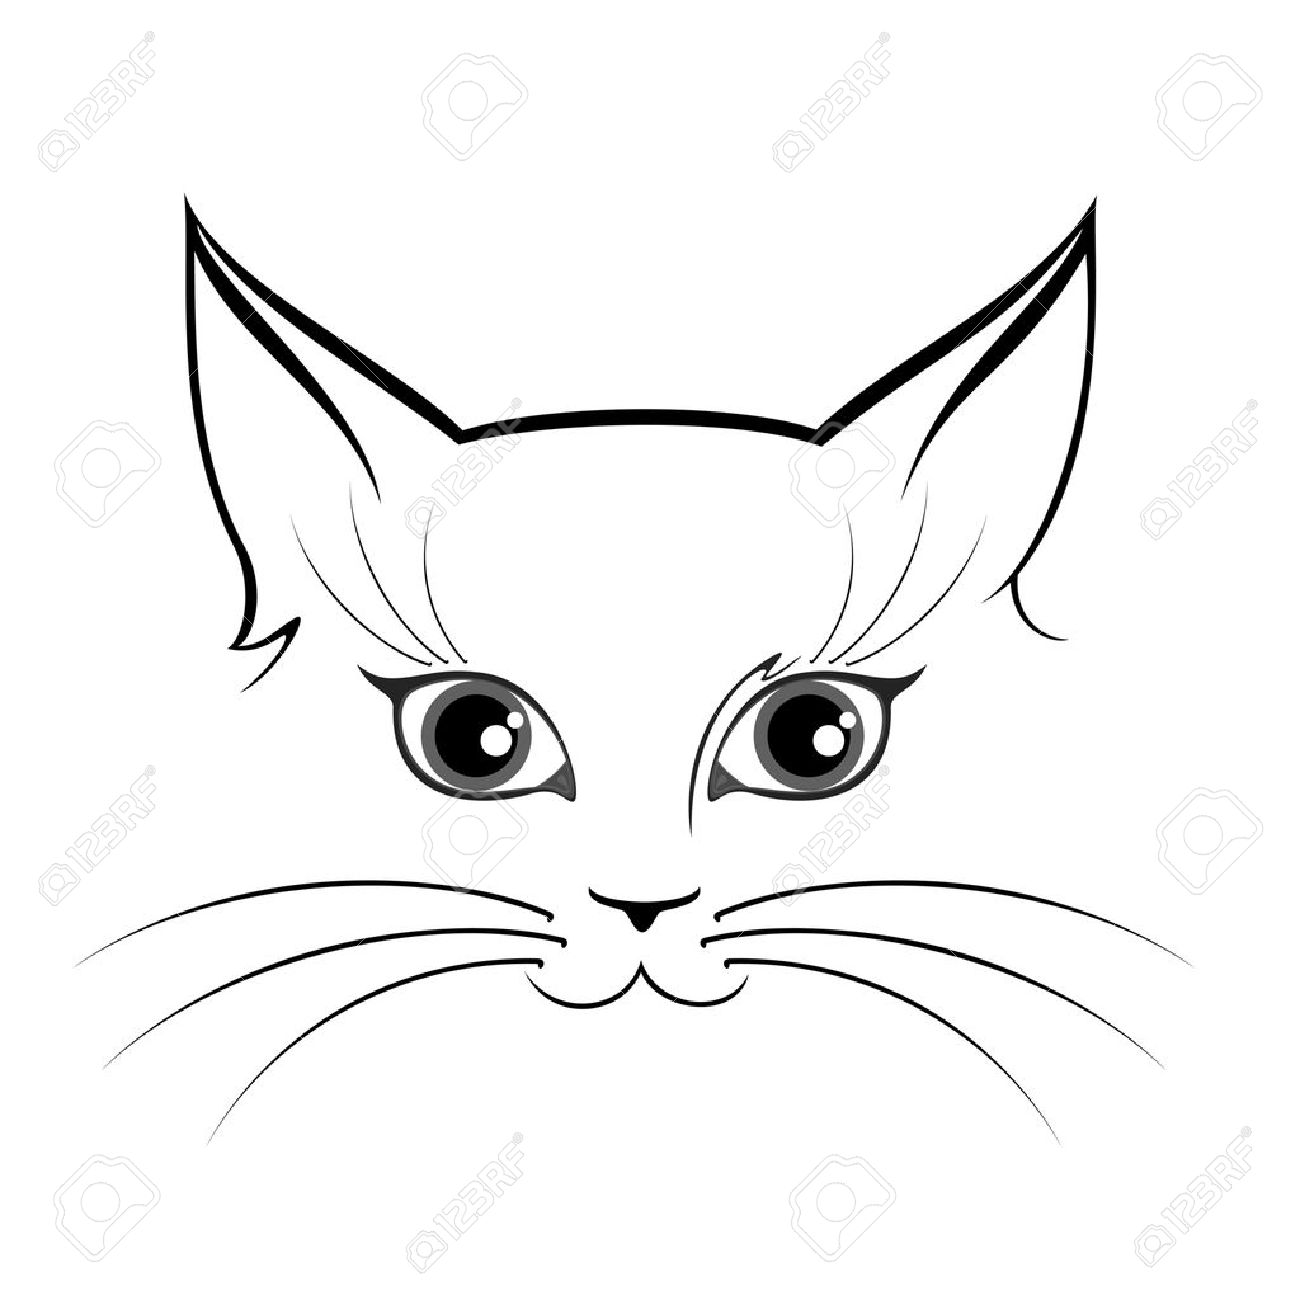 Black and white cat eyes clipart.